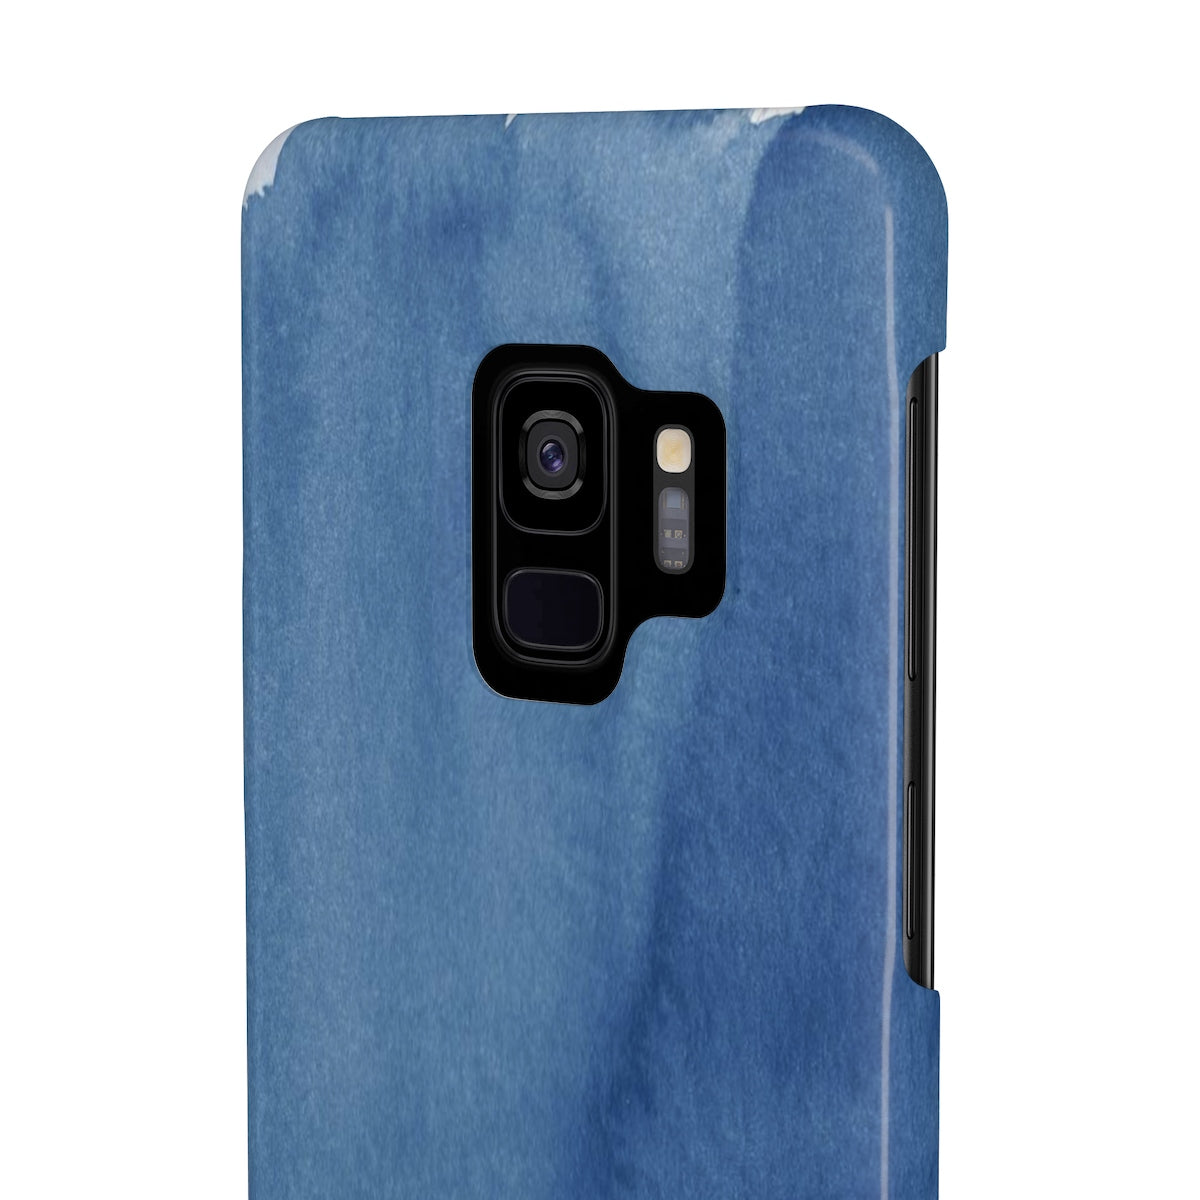 Denim Color Cap Sleek and Chic Phone Case